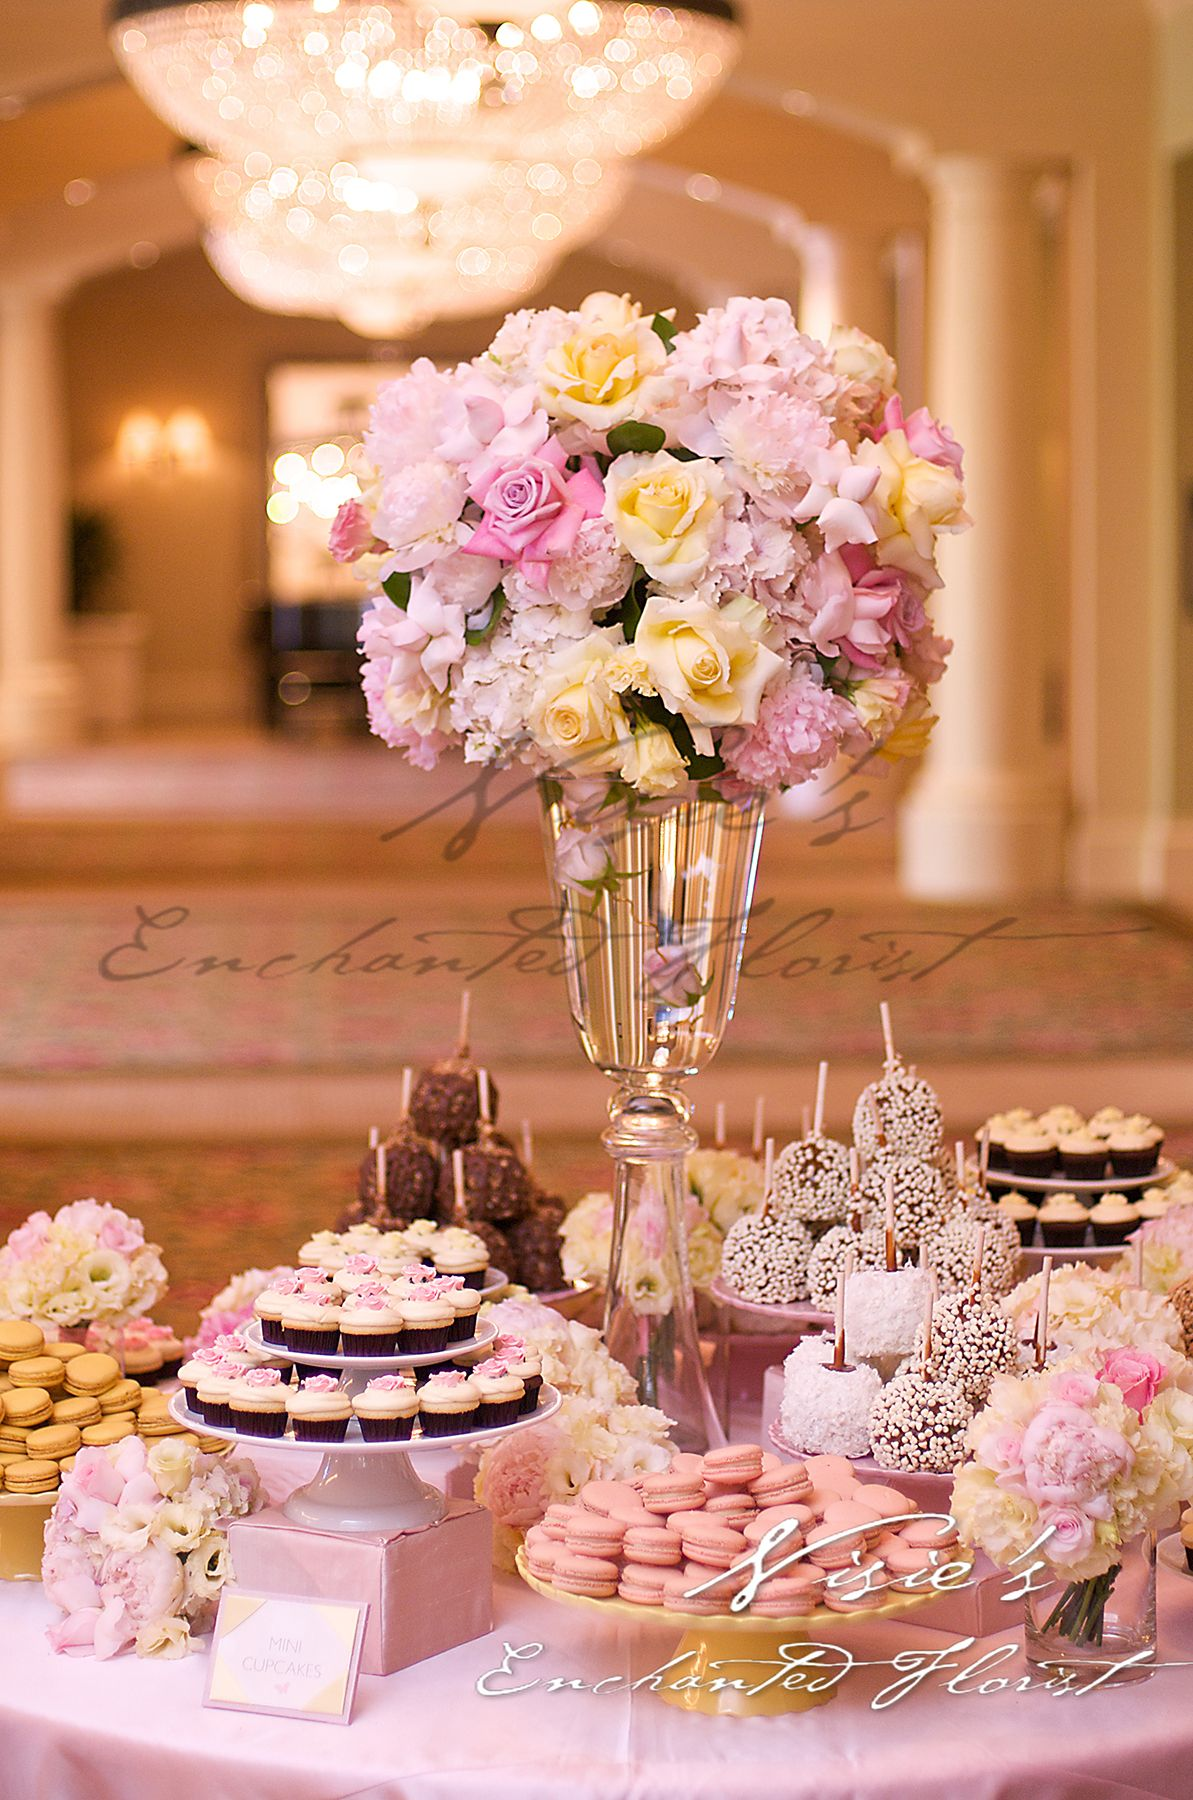 A wedding beautiful flowers macaroons candy apples